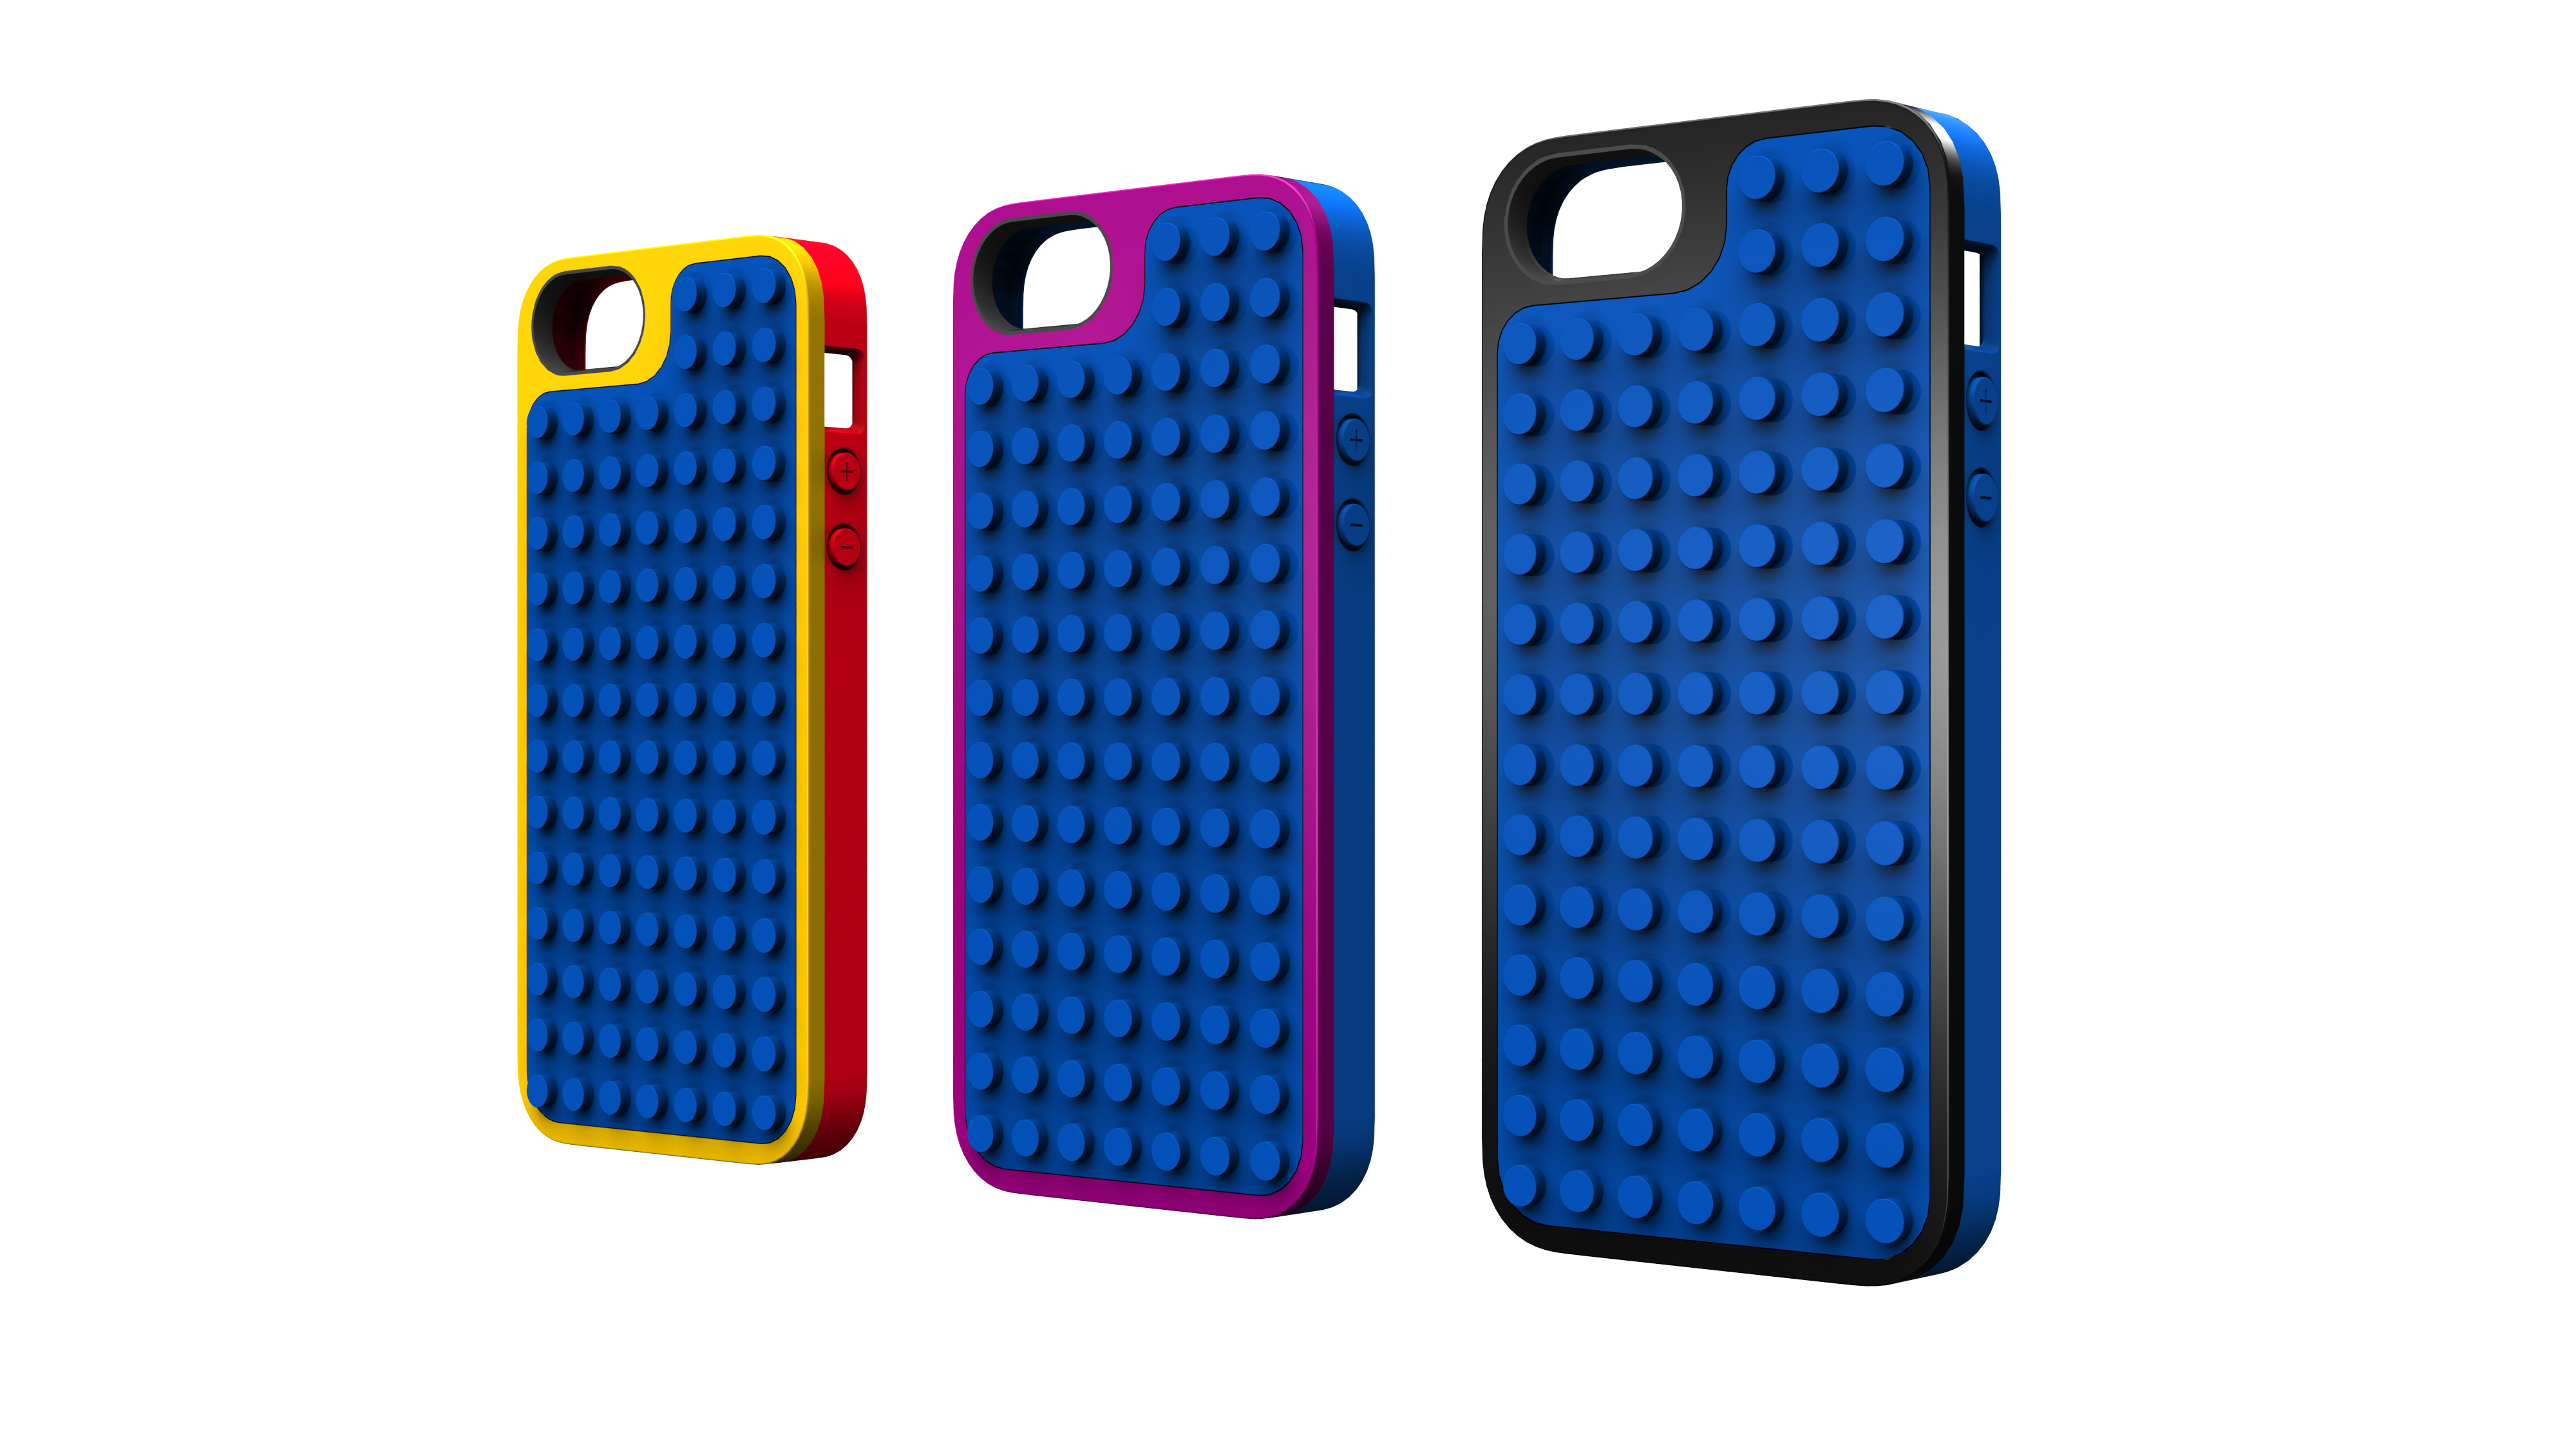 iPhone Lego-Case von Belkin (Front View)